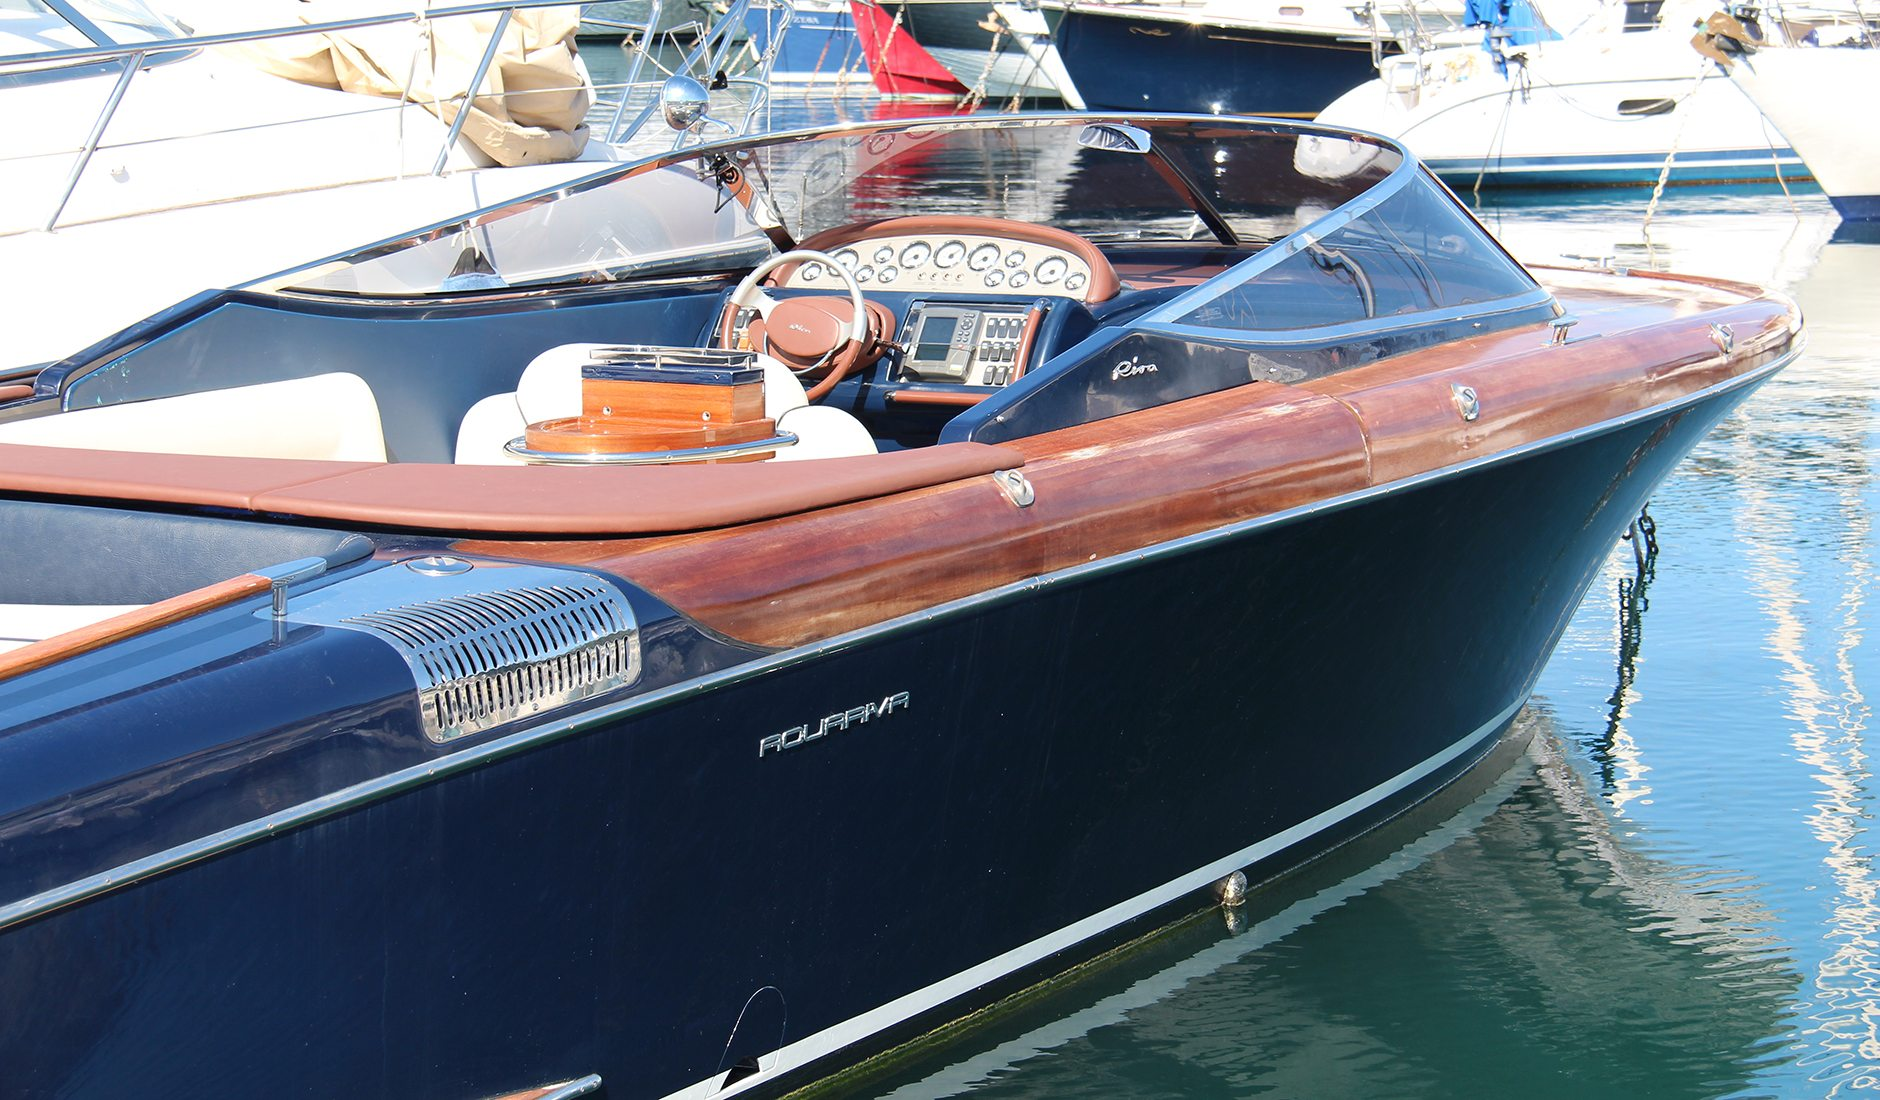 RIVA AQUARIVA SUPER/2003 Photo  1